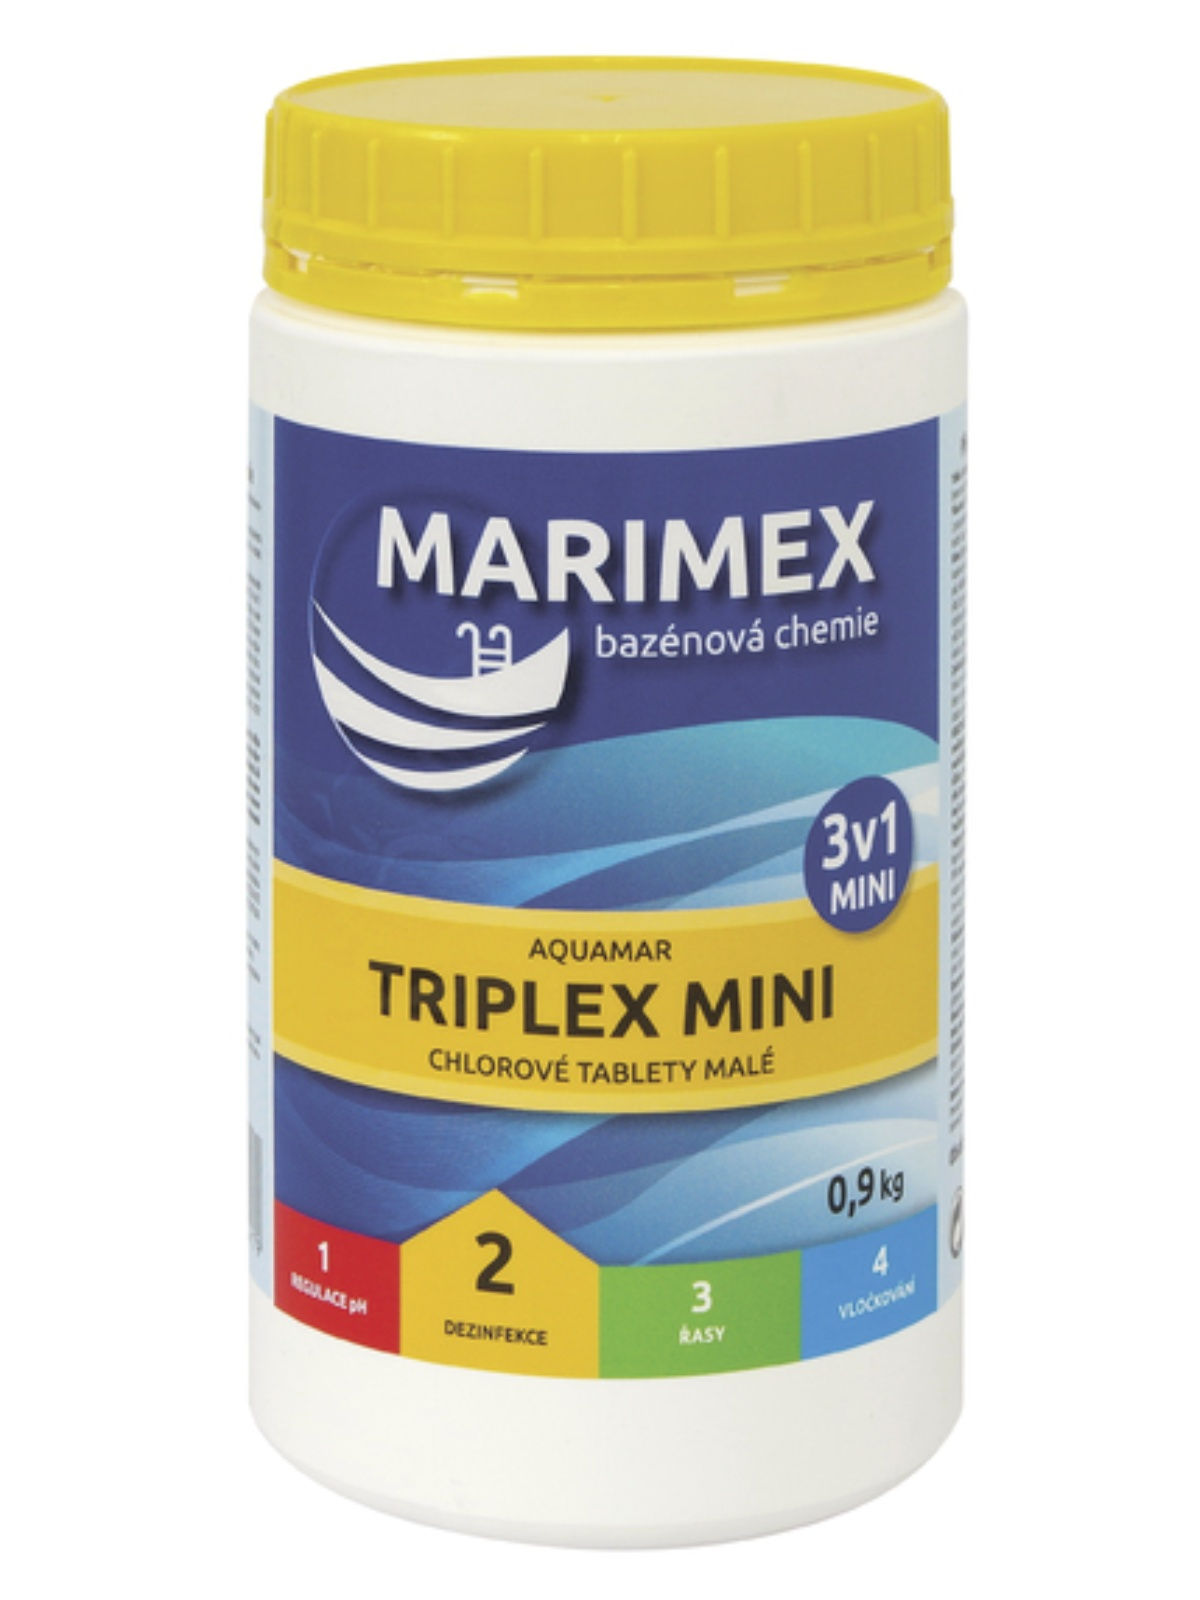 MARIMEX AquaMar Chlor Triplex Mini 900g